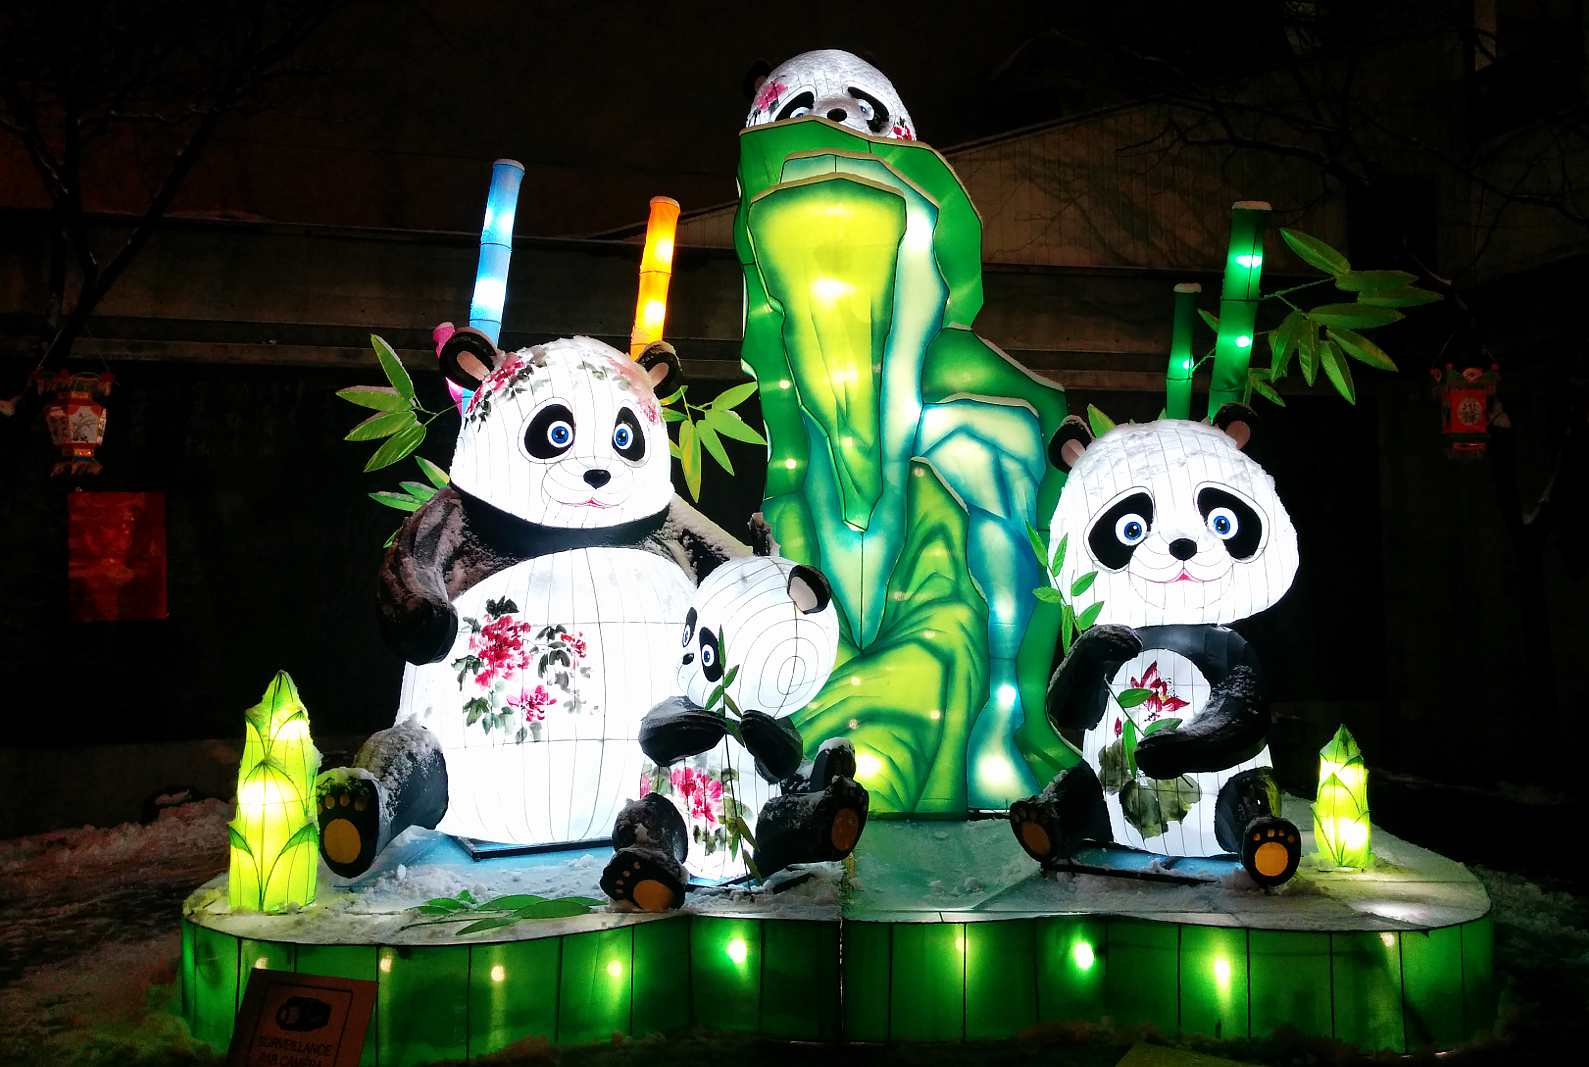 Montreal Chinatown annual events include sidewalk sales, street fairs, and more.